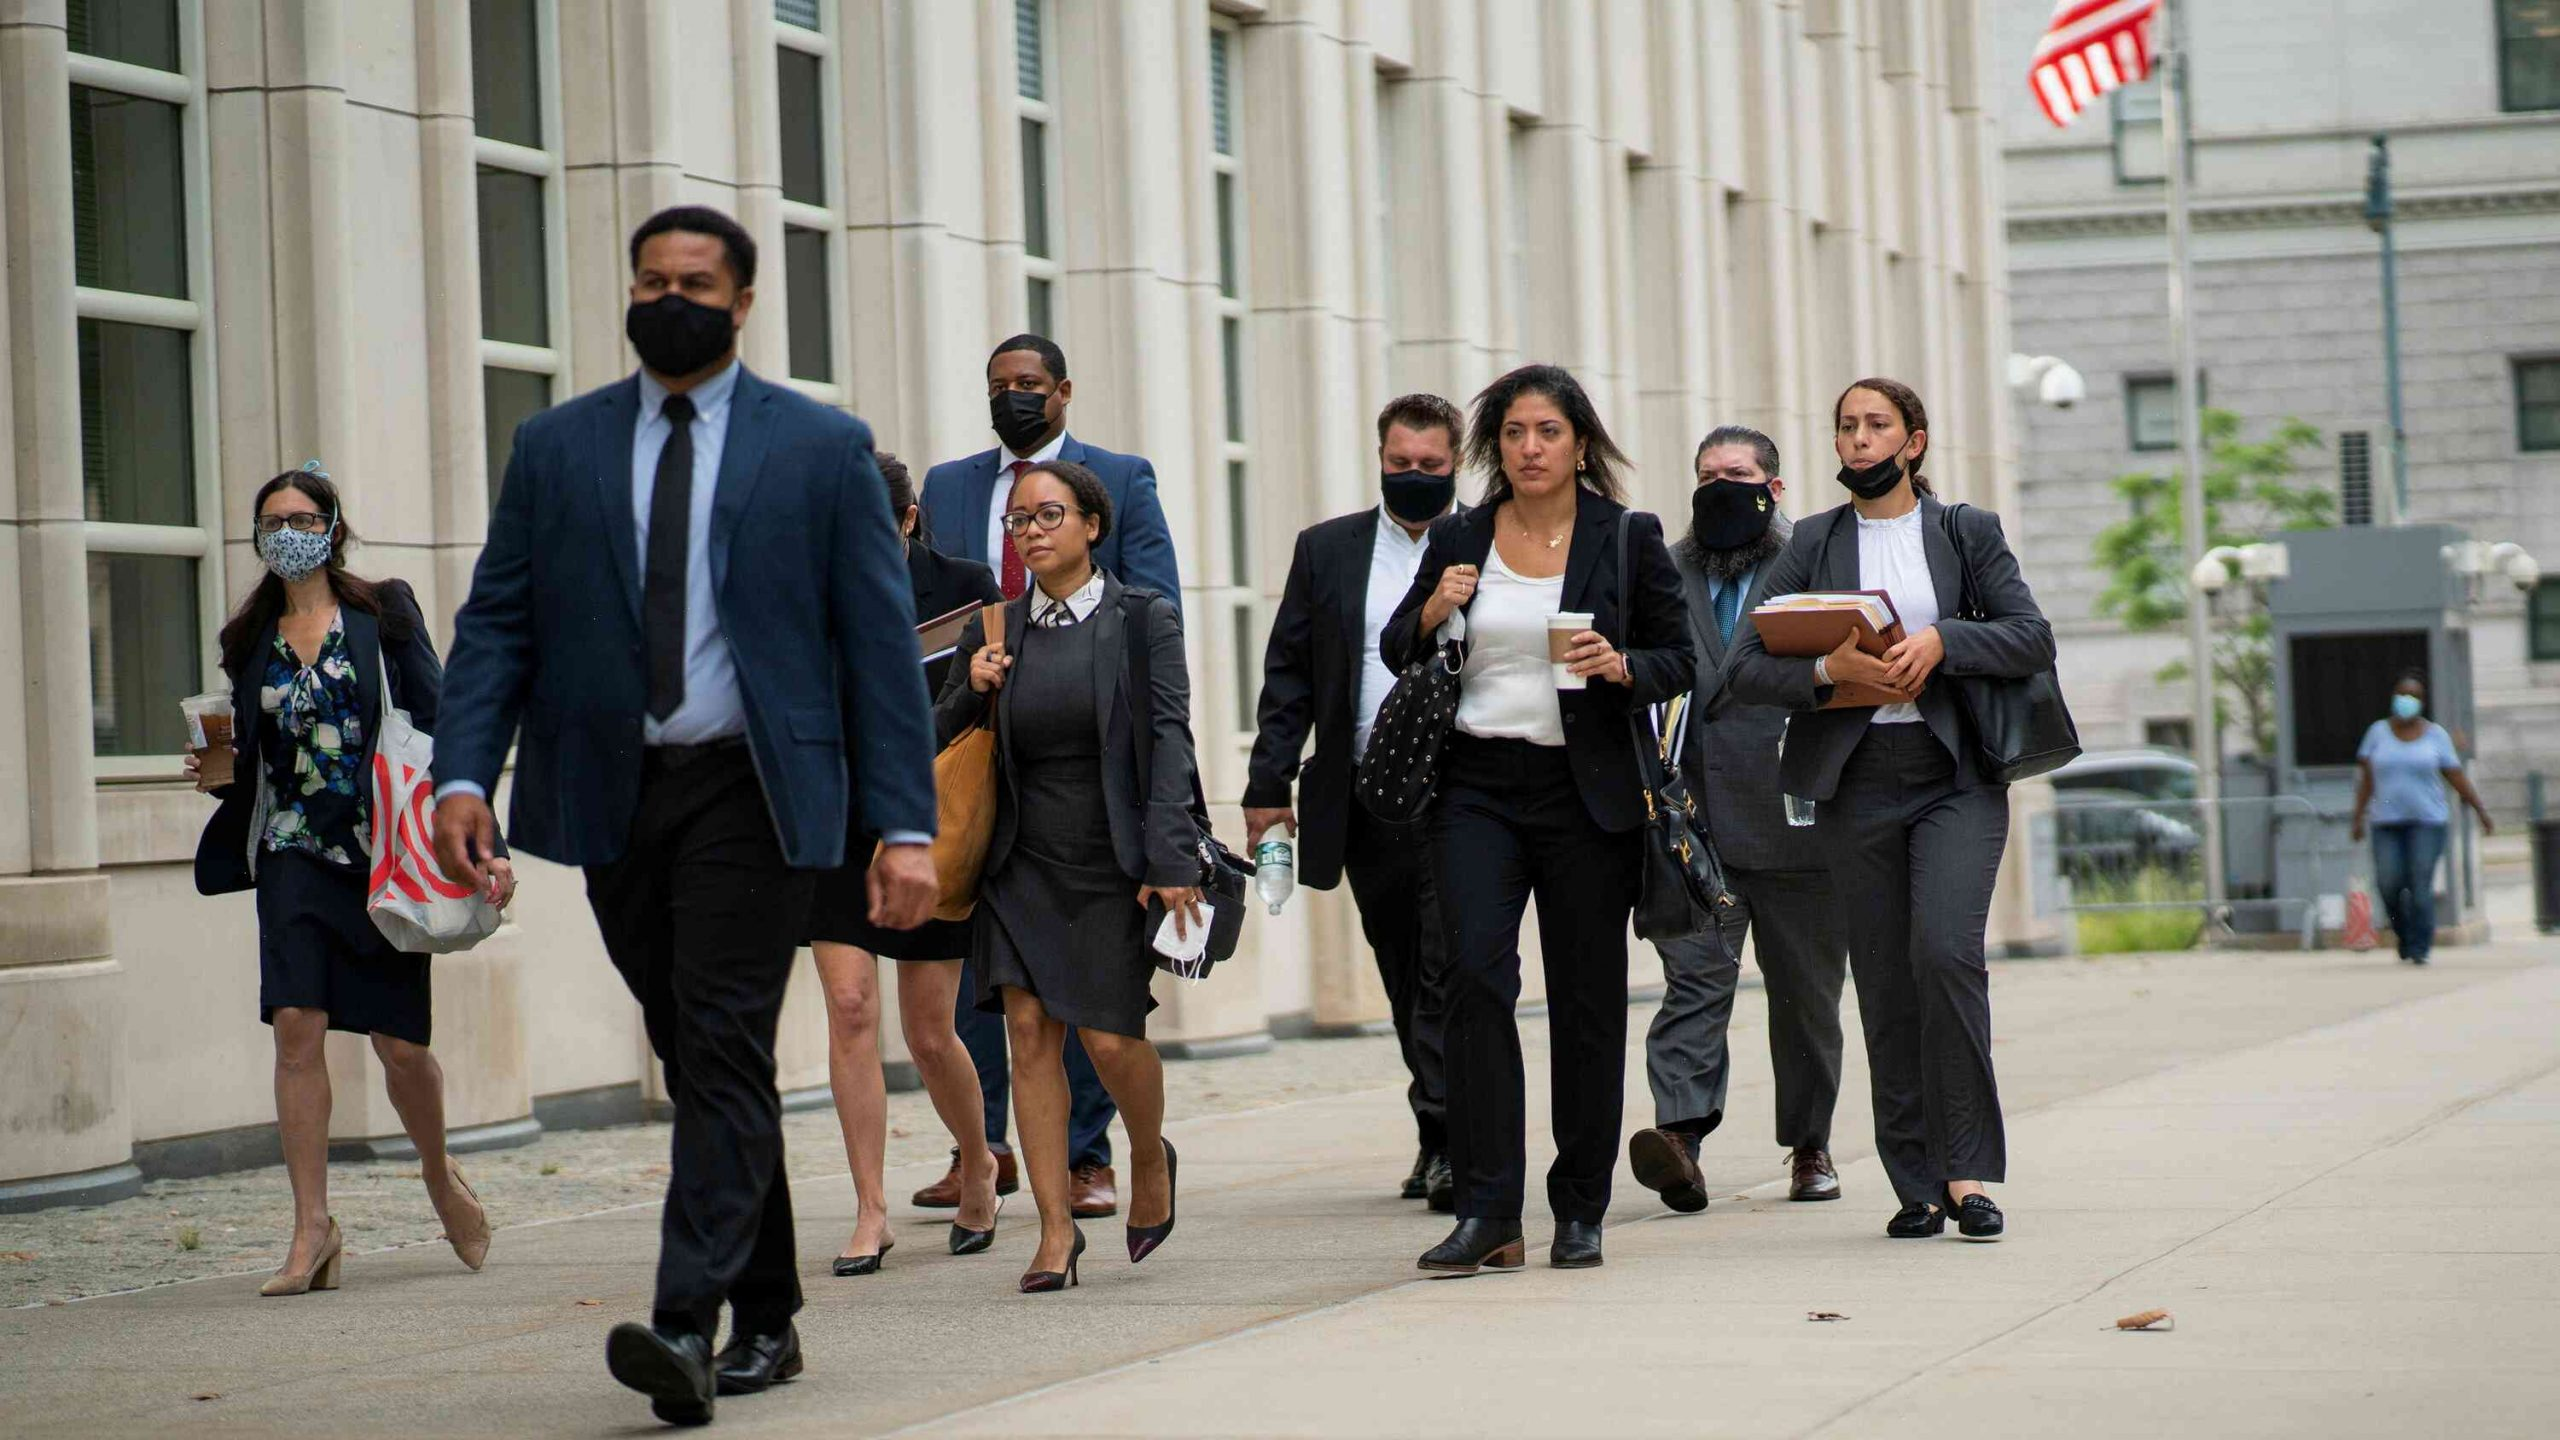 An inside look at the R. Kelly trial